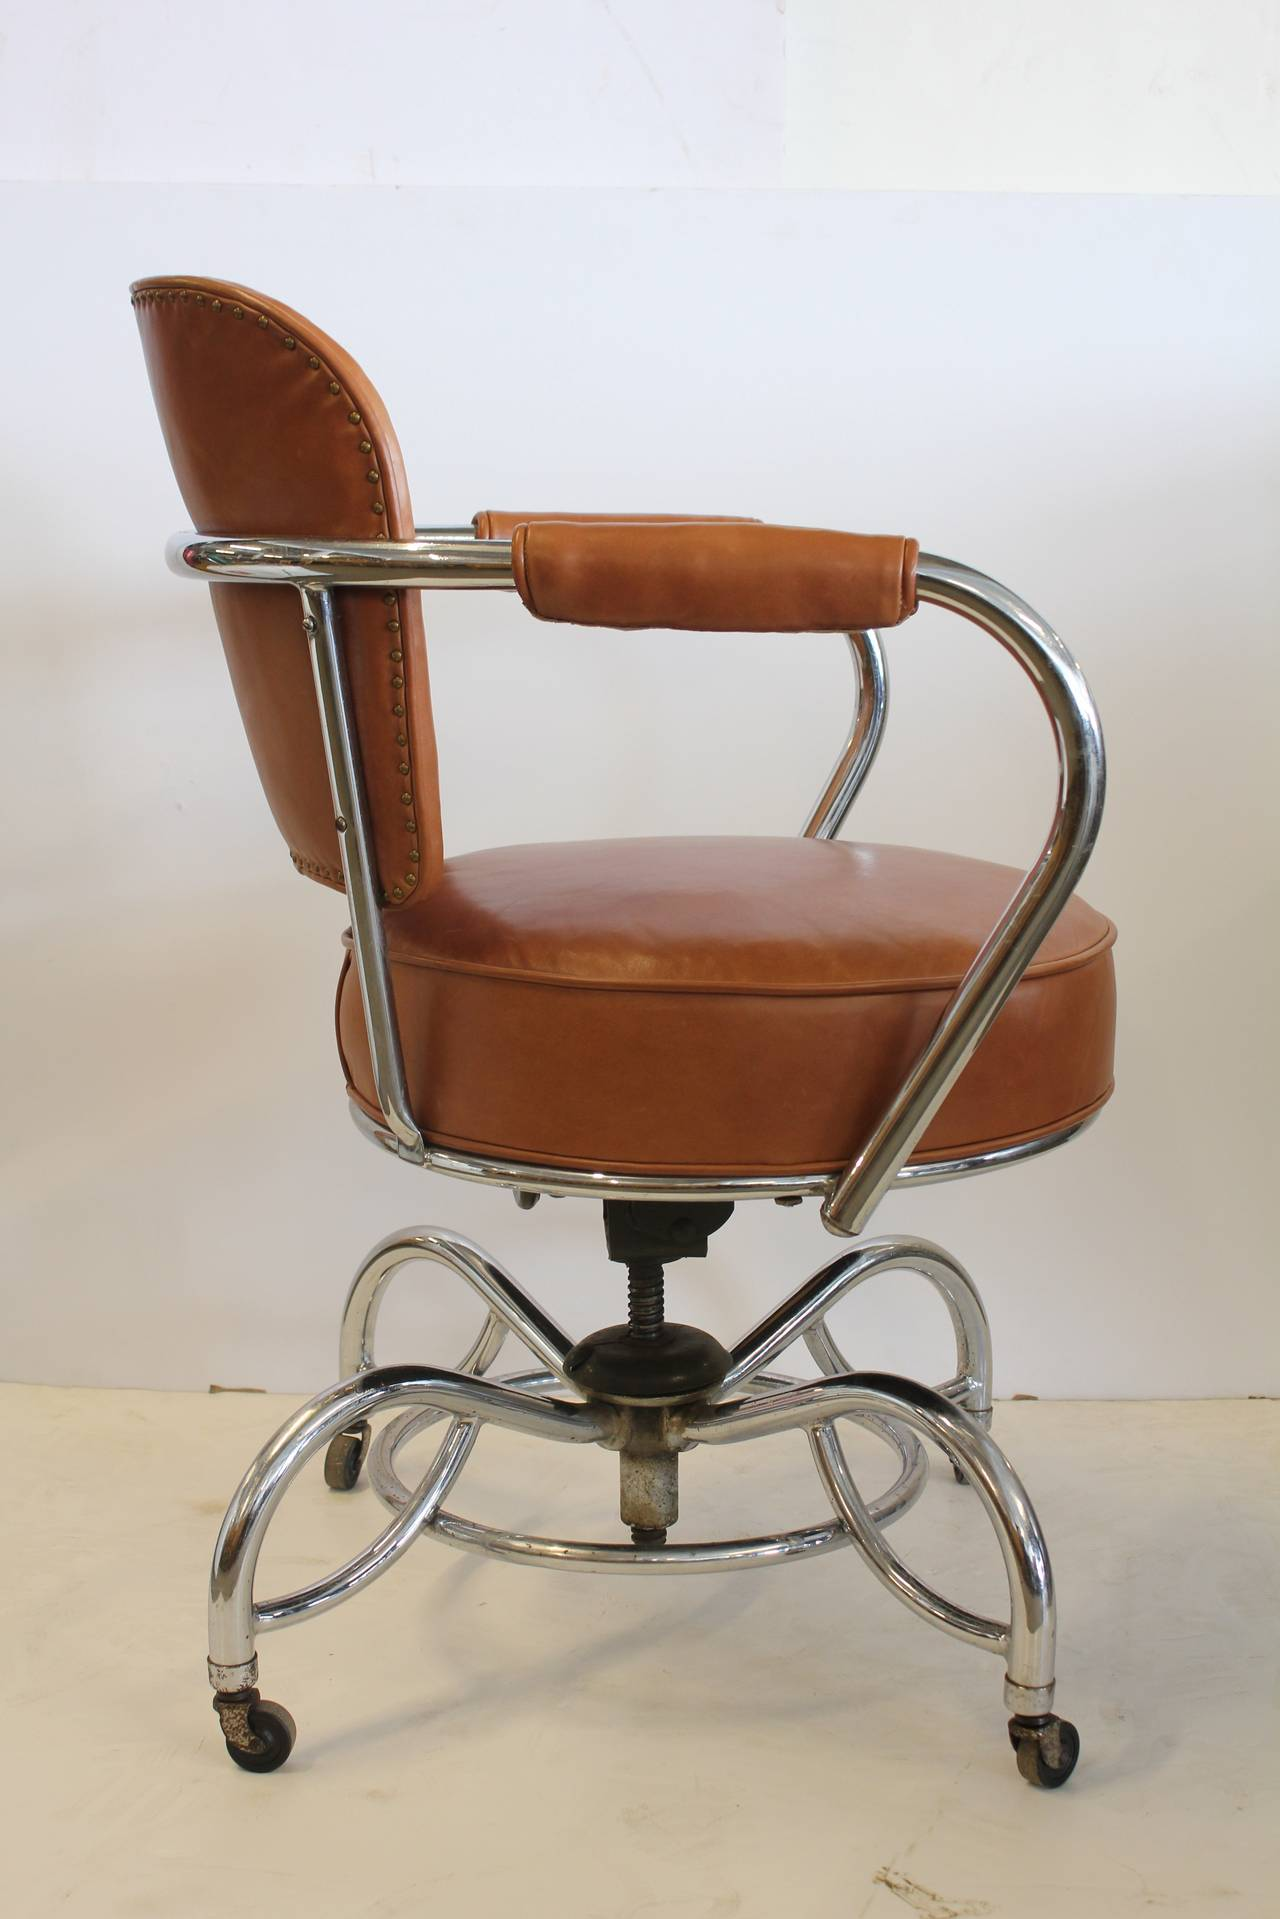 leather chrome chair cover rental tampa stylish art deco and desk at 1stdibs